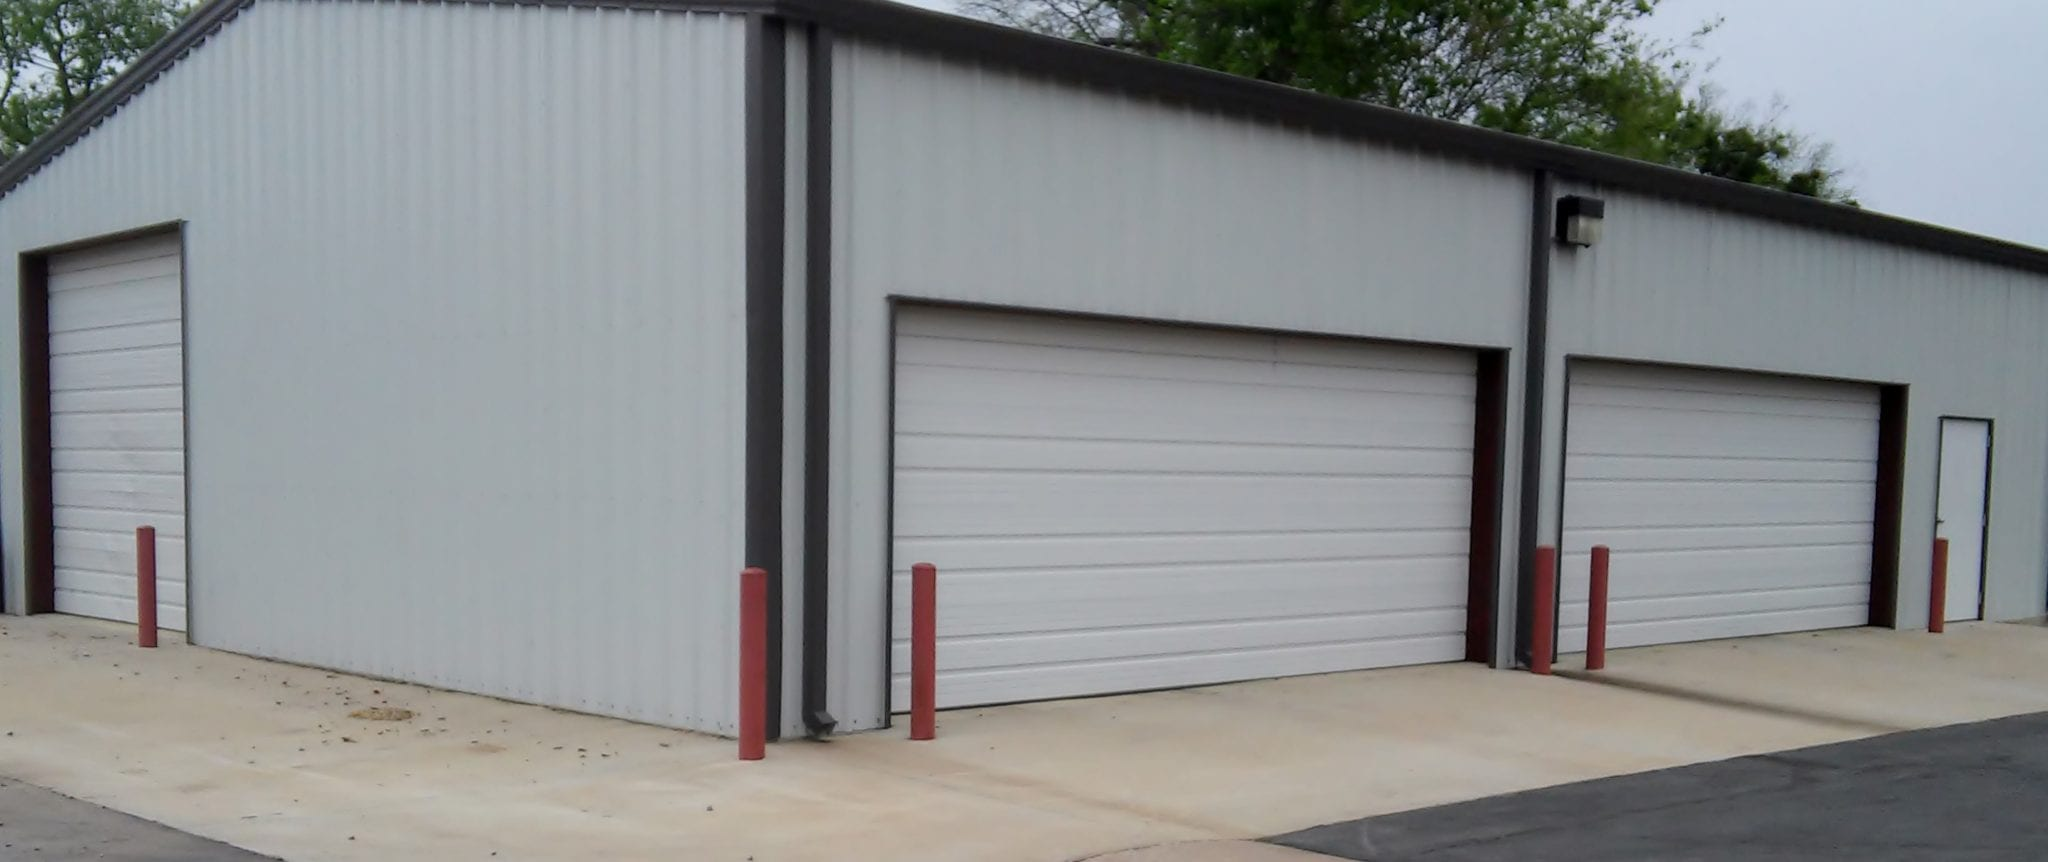 Commercial Overhead Door Services & Garage Door Repairs and Installations - Helotes Overhead Garage Doors